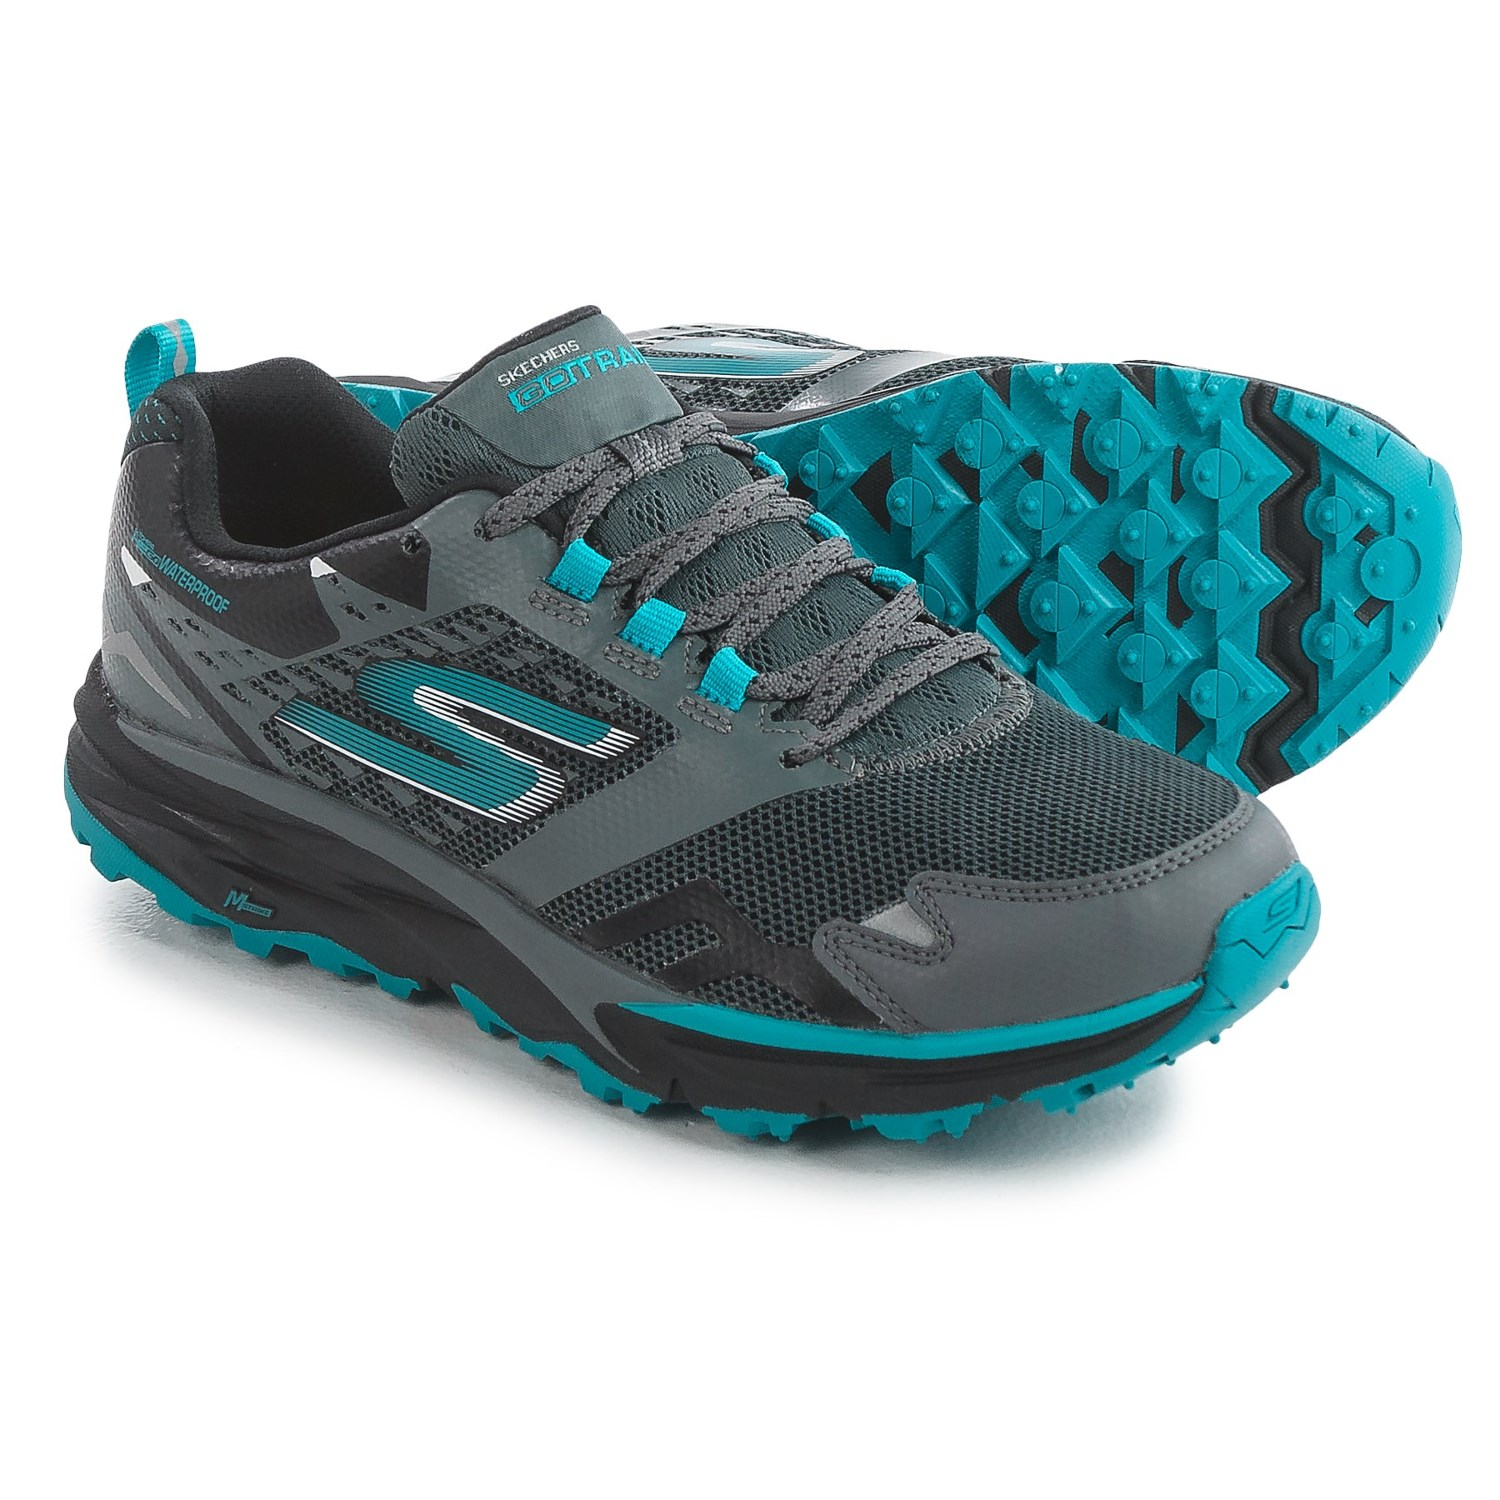 Which Are The Best Running Shoes For Ladies